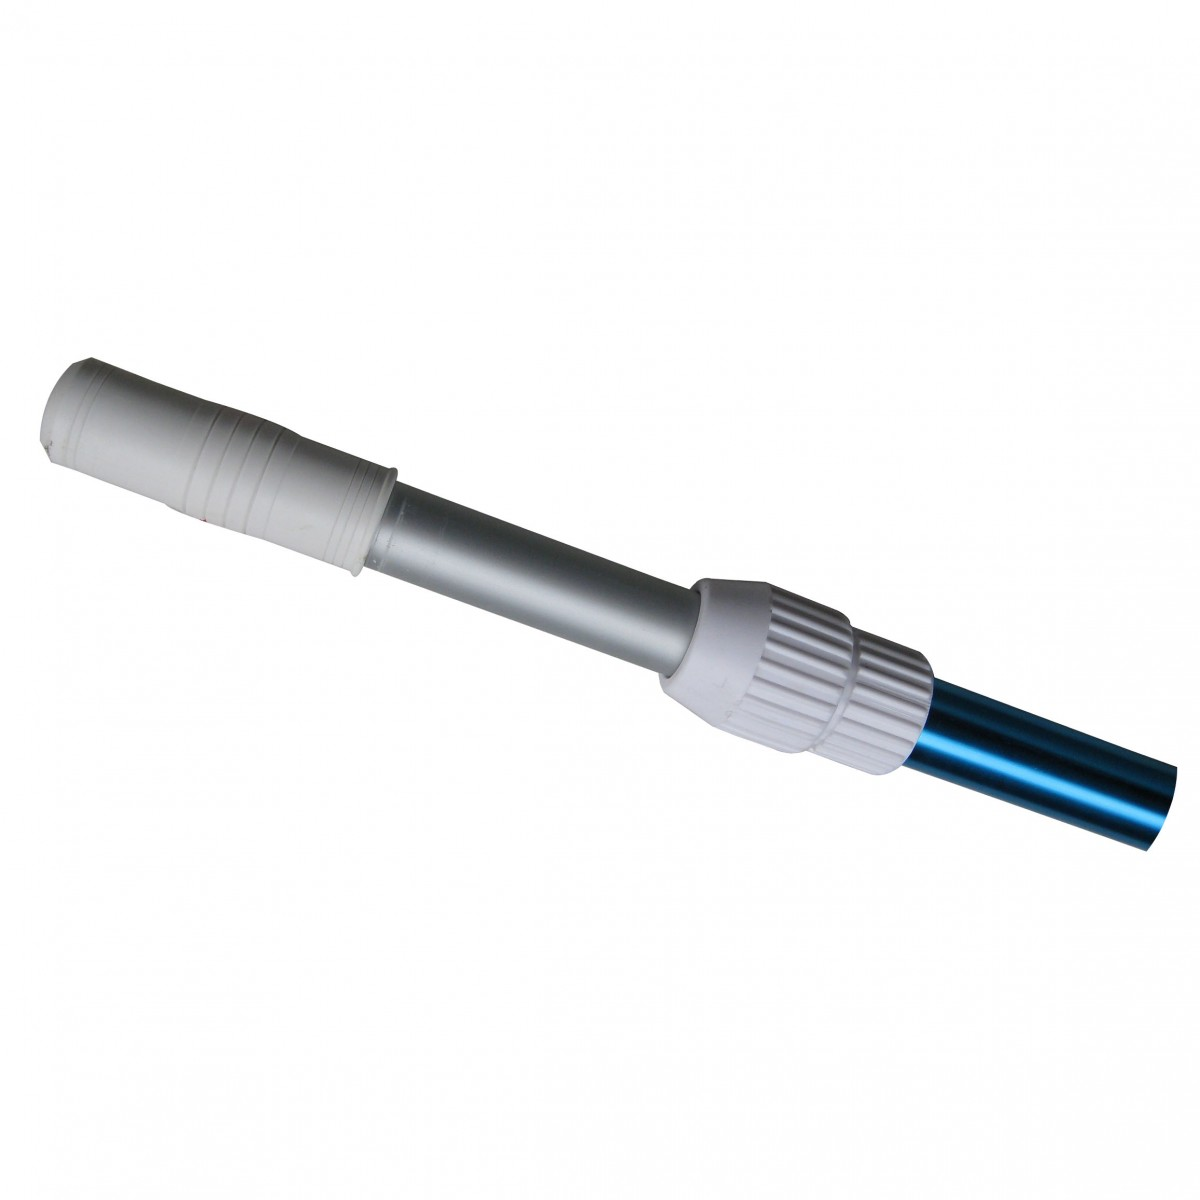 2 Section telescopic pole with easy lock device, 6 feet extend upto 12 feet